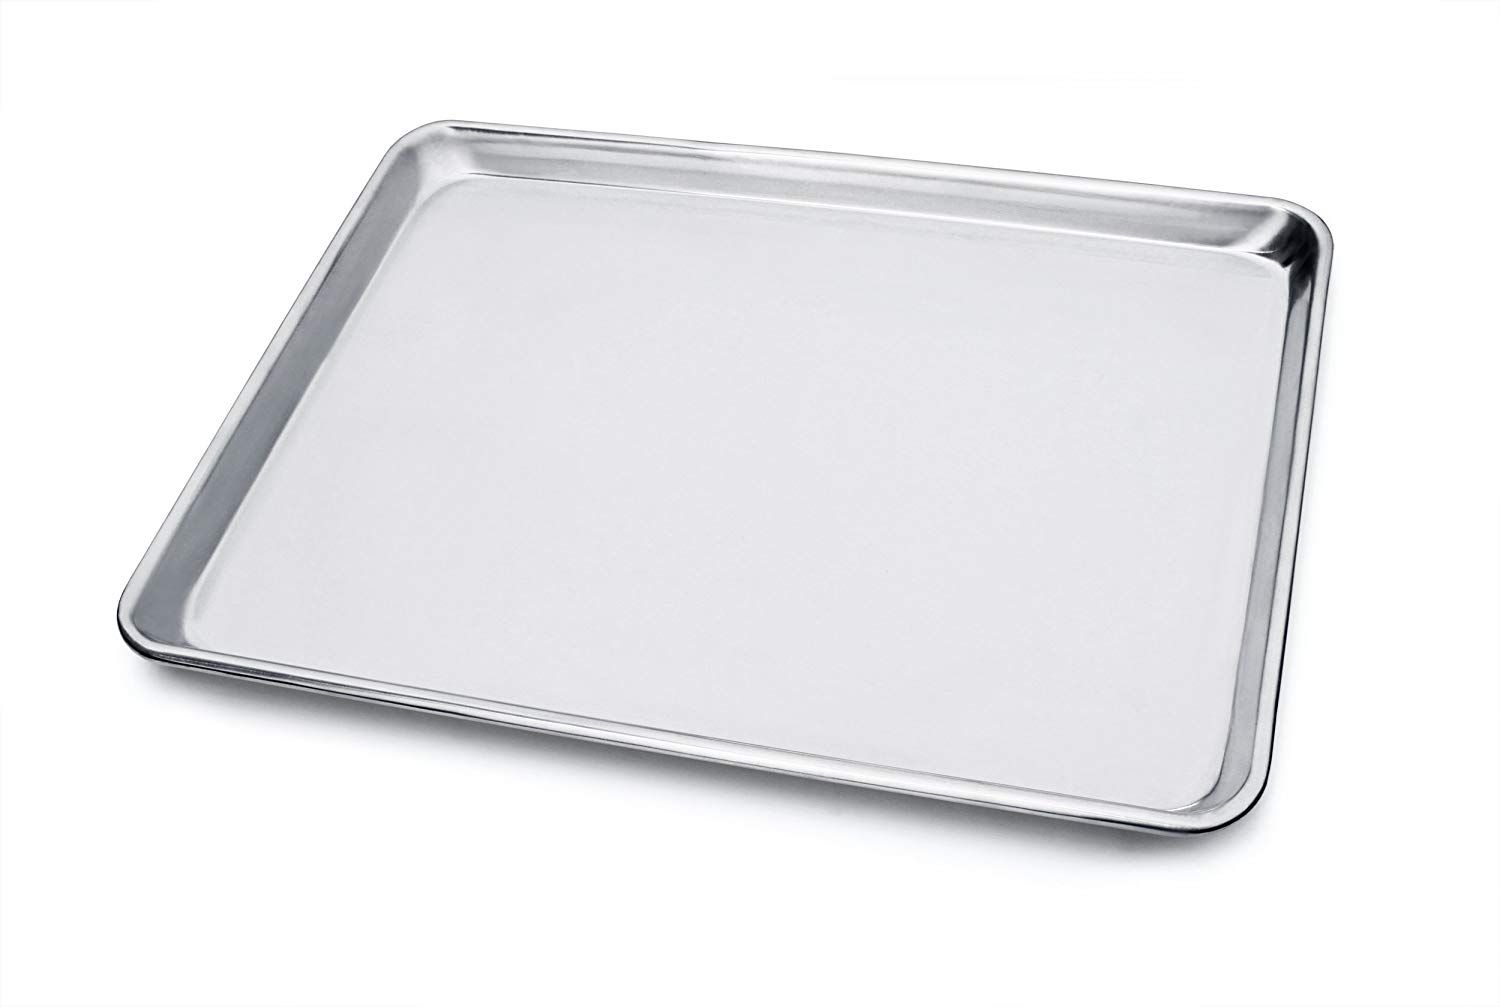 New Star Foodservice 36862 Commercial 18 Gauge Aluminum Sheet Pan 13 X 18 X 1 Inch Half Size More Info Could Be Fo Sheet Pan Aluminium Sheet Food Service